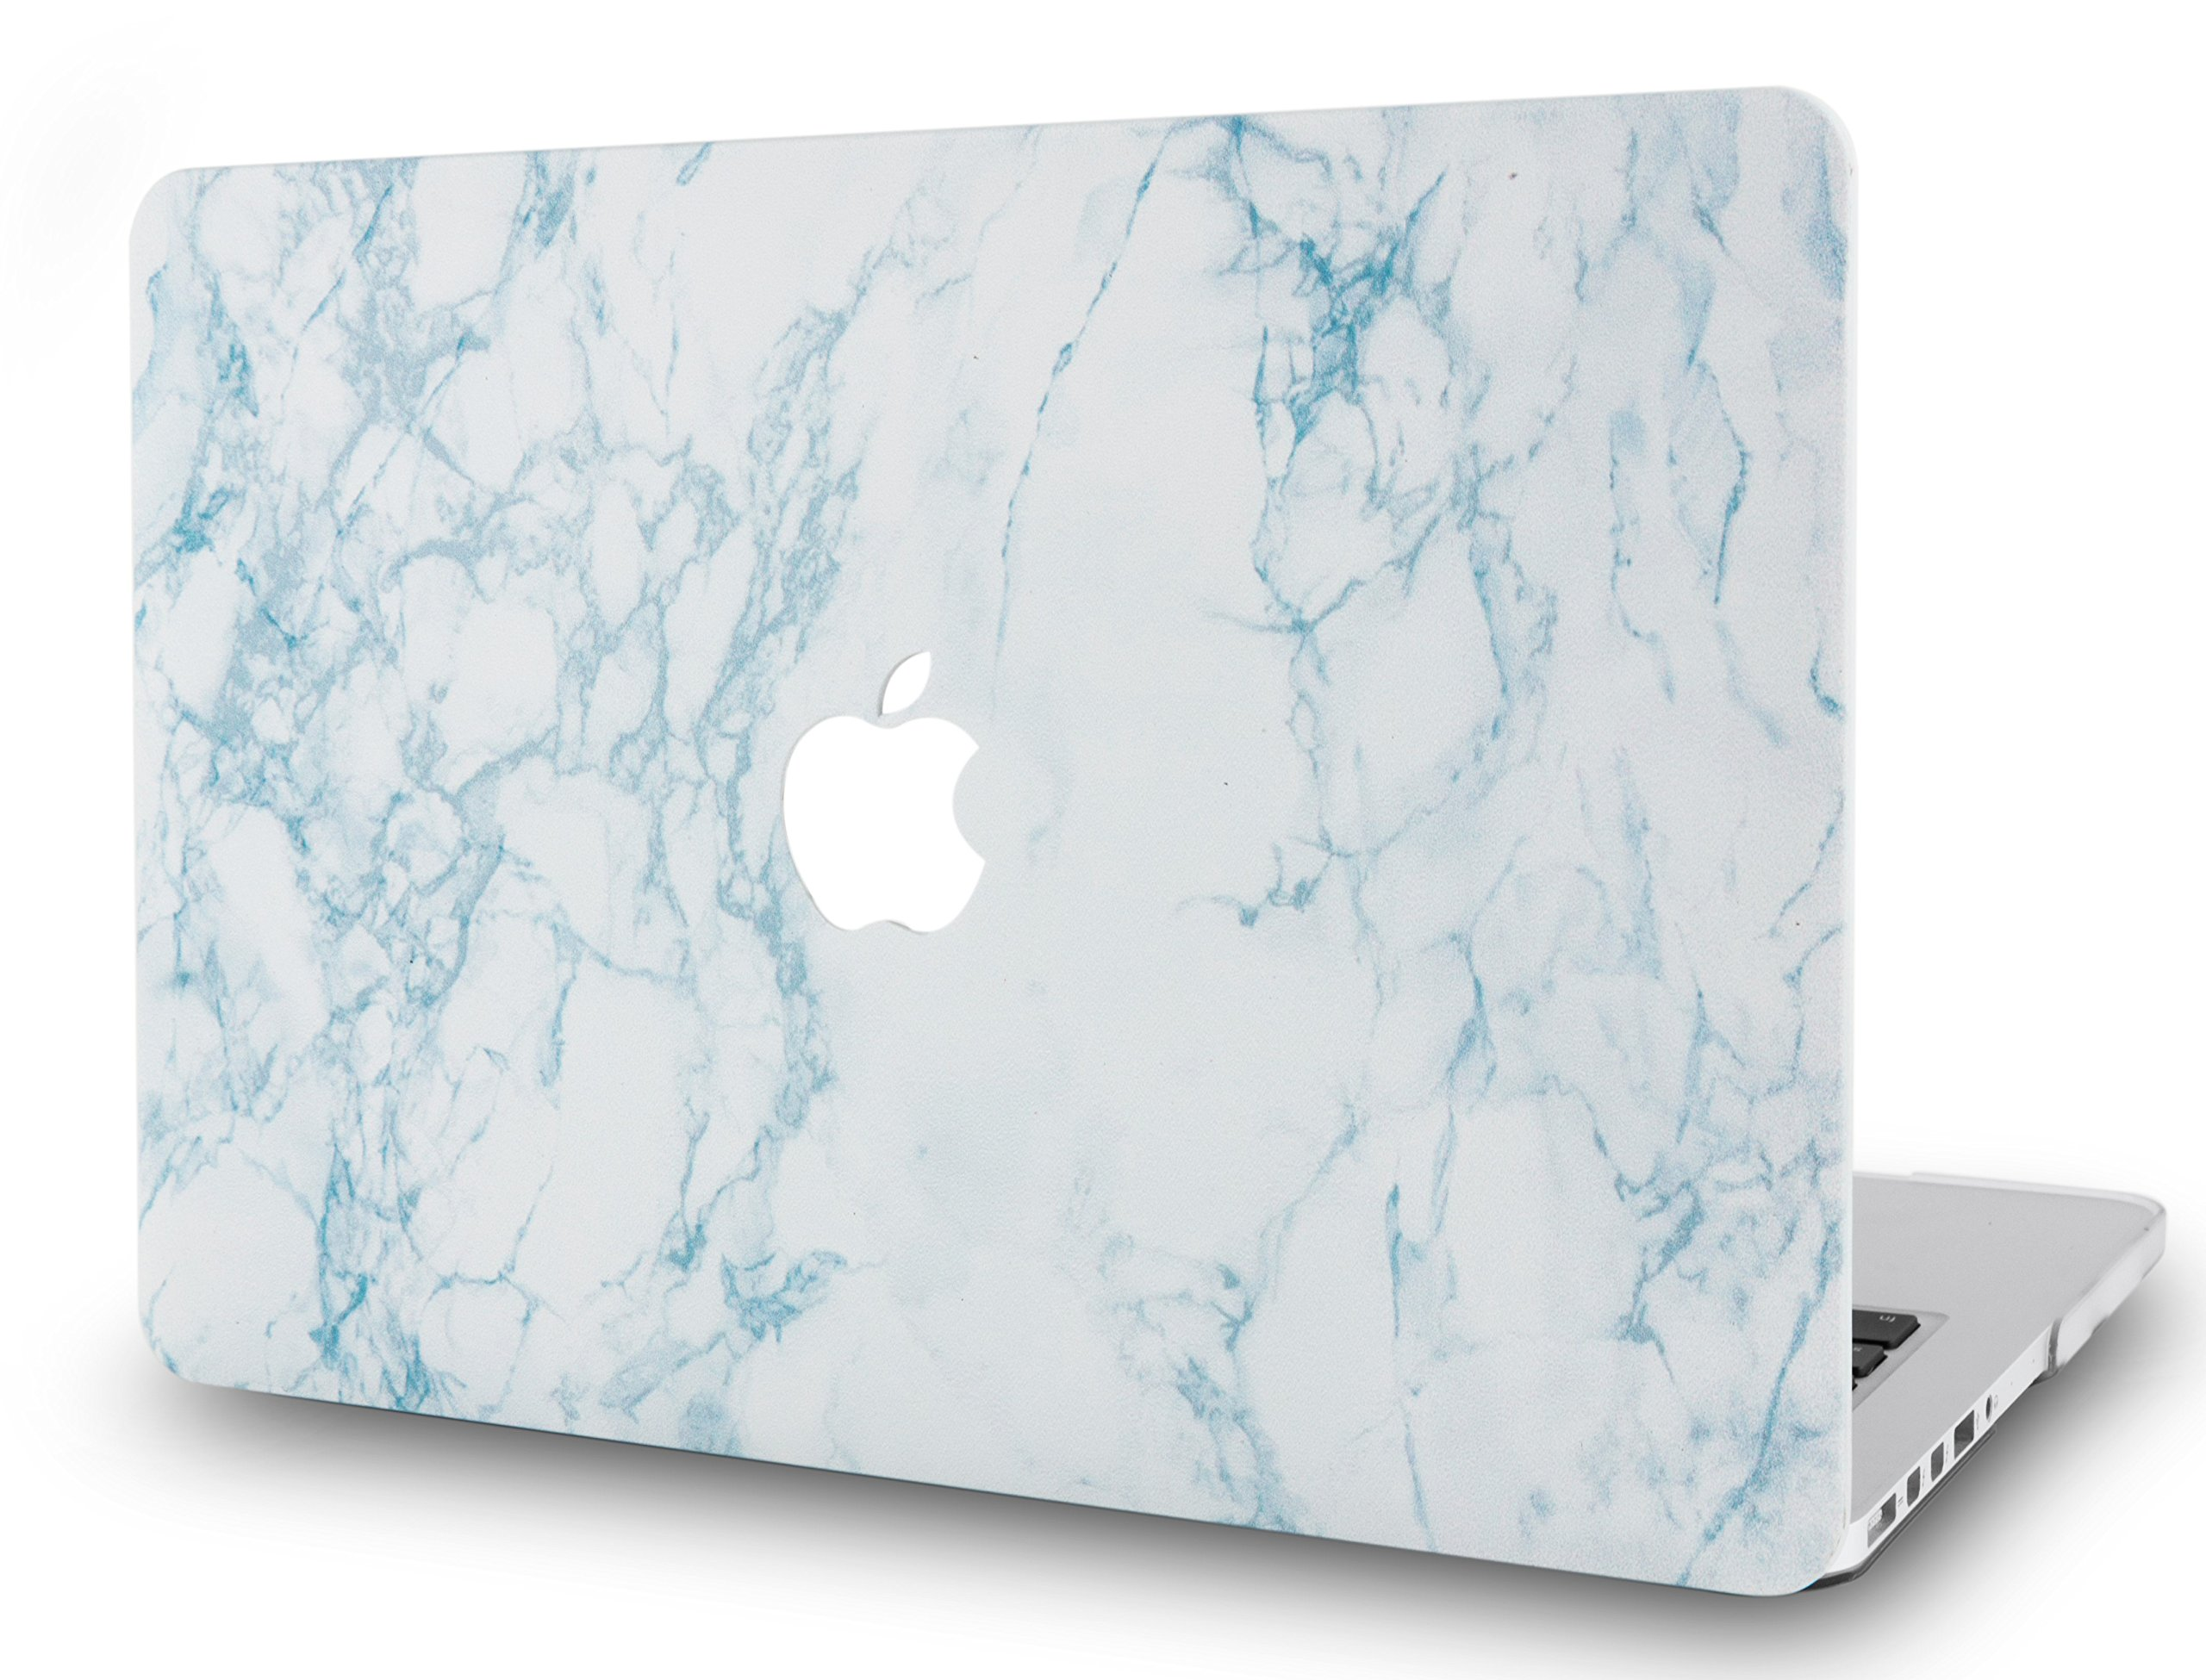 LuvCase Laptop Case for MacBook Air 13 Inch A1466 / A1369 (No Touch ID) Rubberized Plastic Hard Shell Cover (White Marble 2)